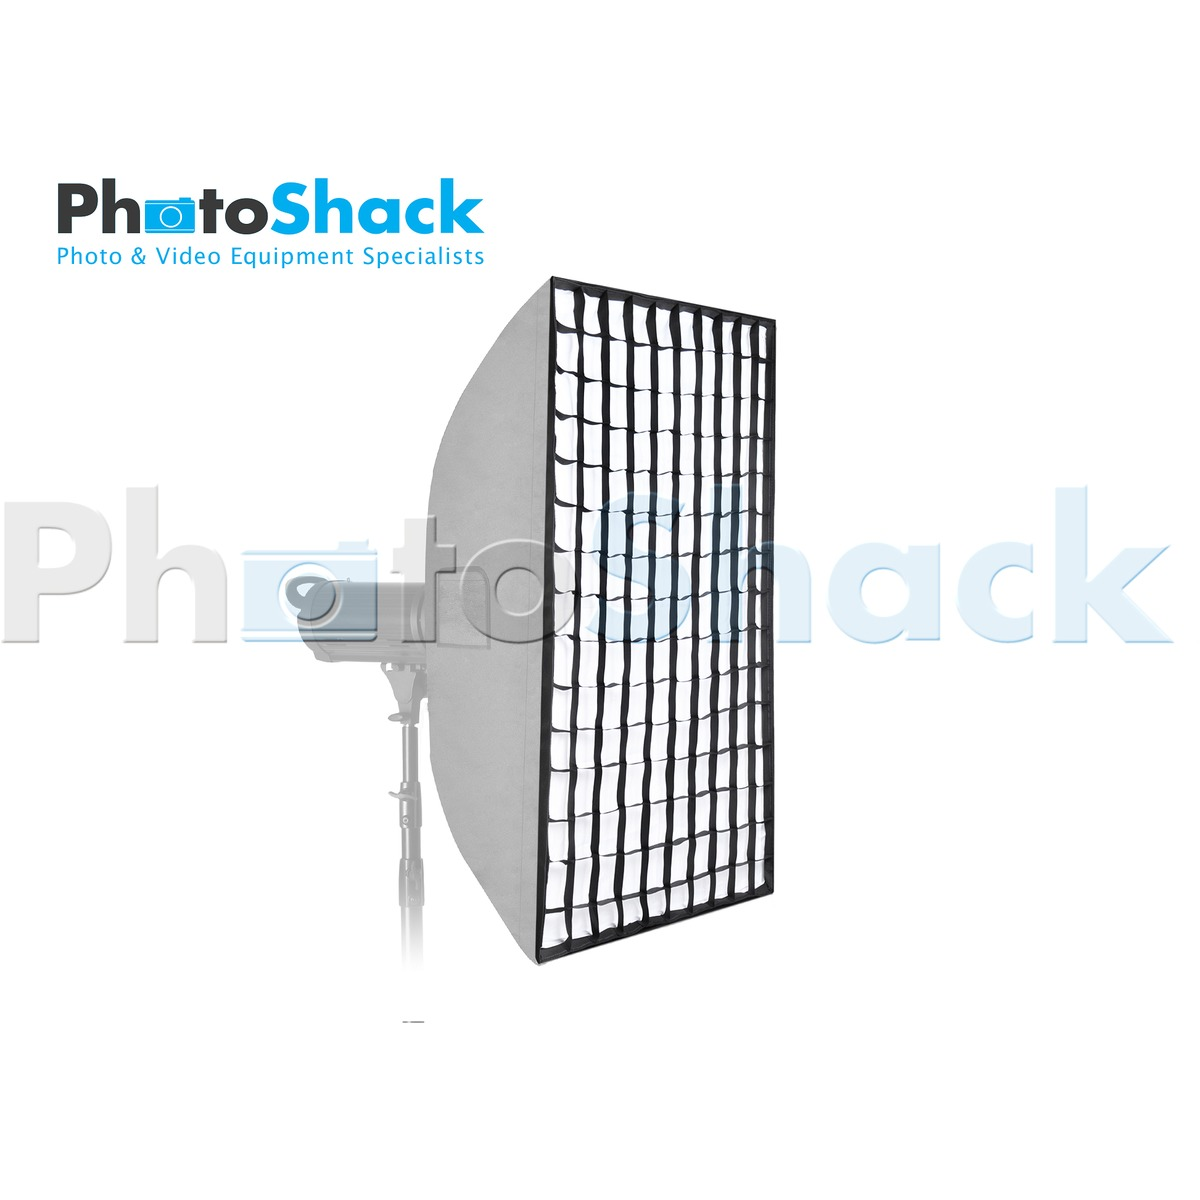 Softbox 40x60cm with Grid (Heat resistant) - Bowens